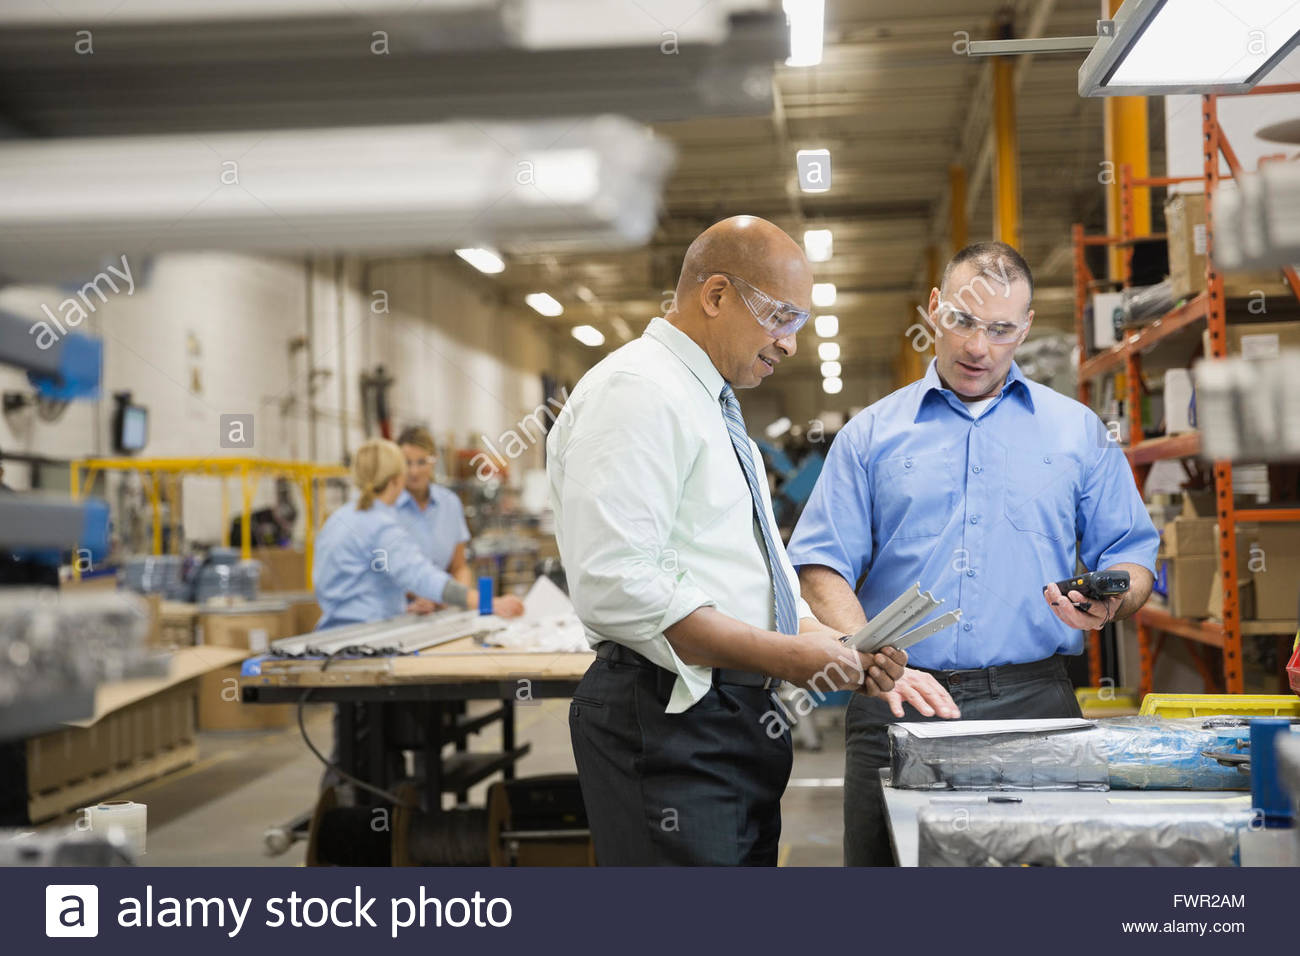 Manager and worker looking at metal parts - Stock Image